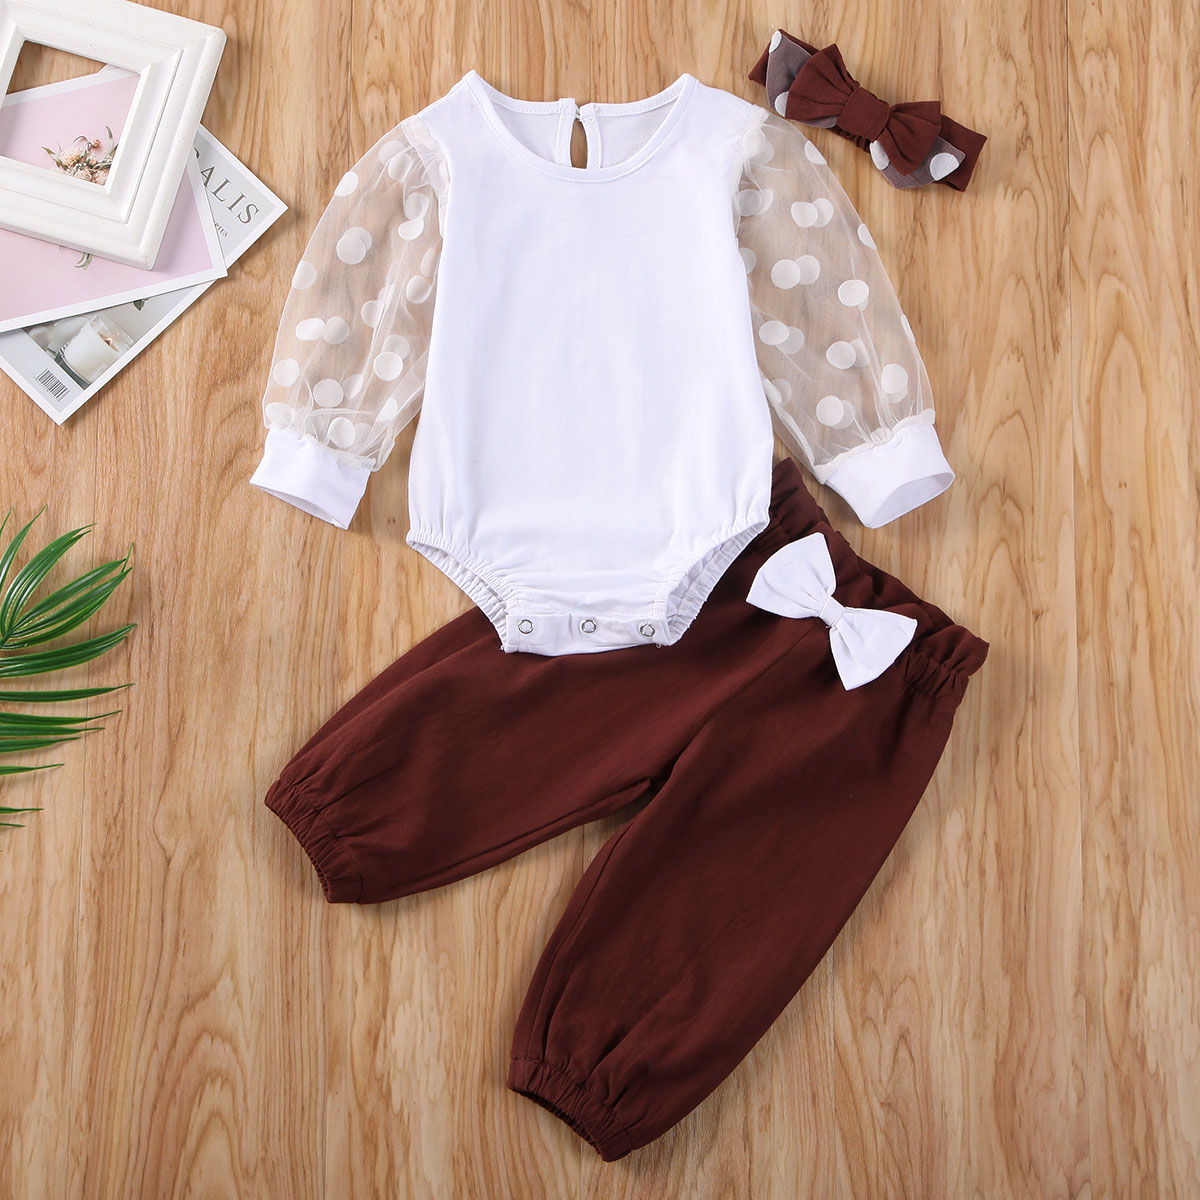 Pudcoco Newborn Baby Girl Clothes Long Sleeve Tulle Polka Dot Romper Tops Long Pants Headband 3Pcs Outfits Clothes